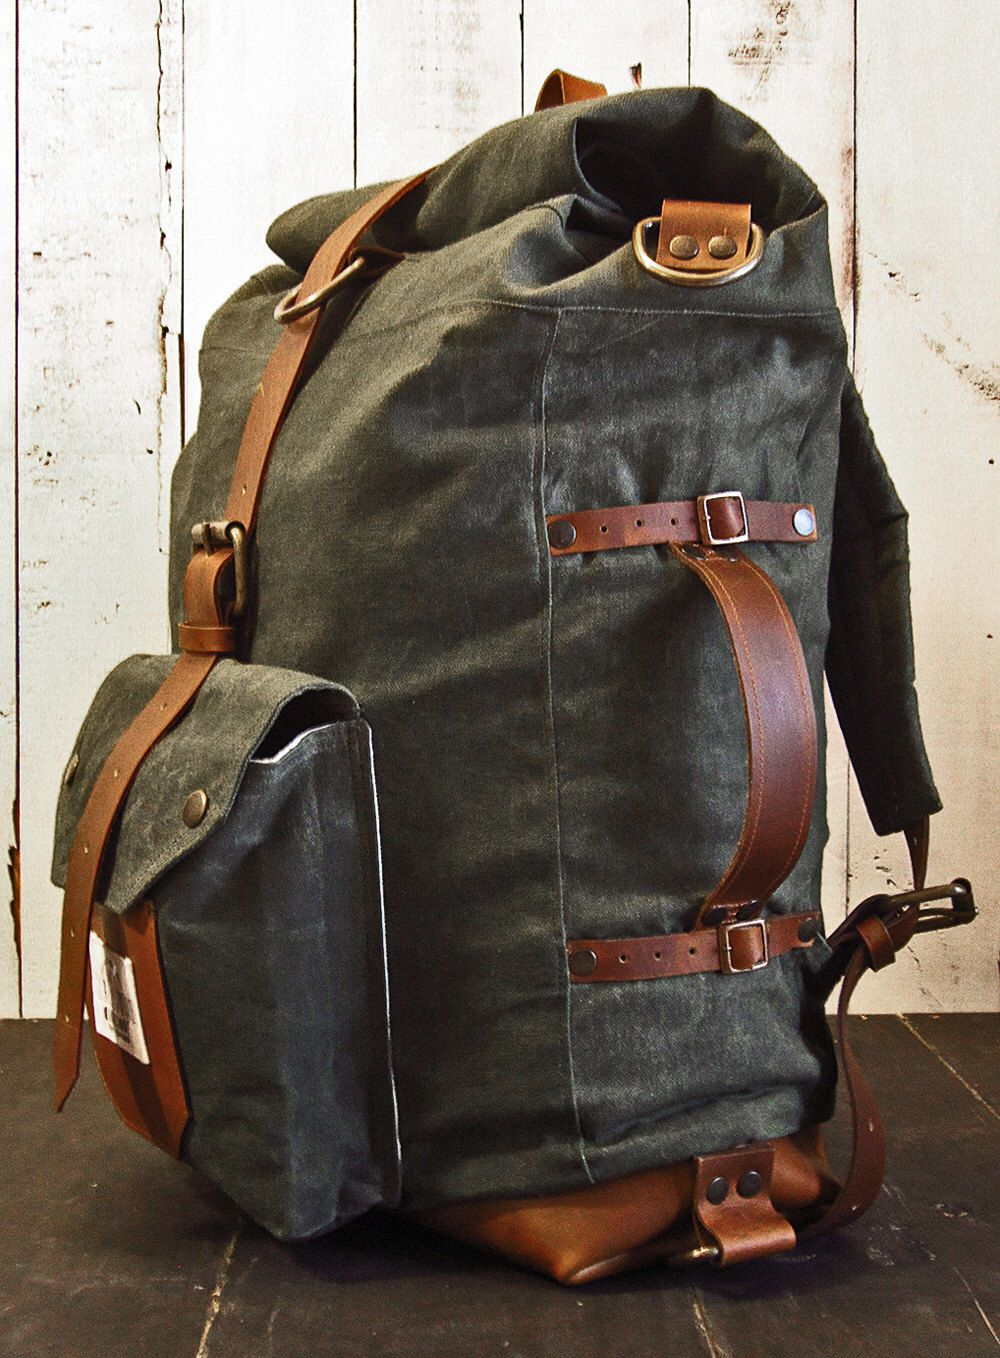 01f48ae676f8 The Nomad II Backpack - Hand waxed canvas leather roll top bag - 3 ways  rucksack